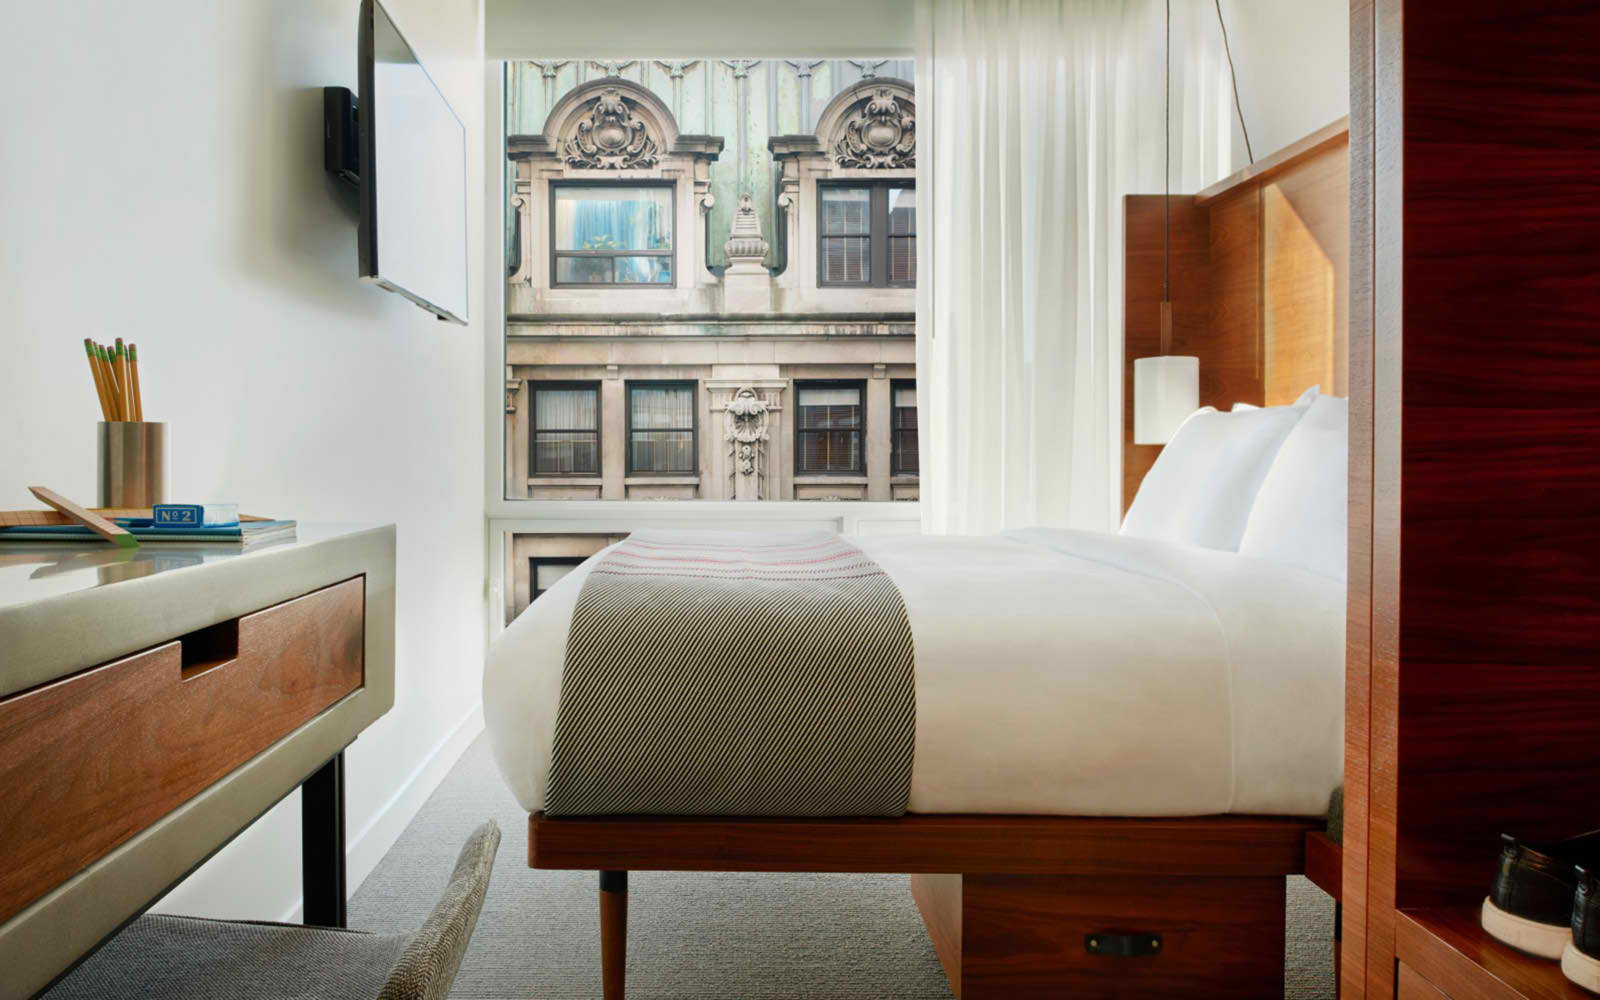 Queen Urban Bed room in NYC NoMad hotel with desk to the left and bed centered in front of wall television and large window overlooking the city